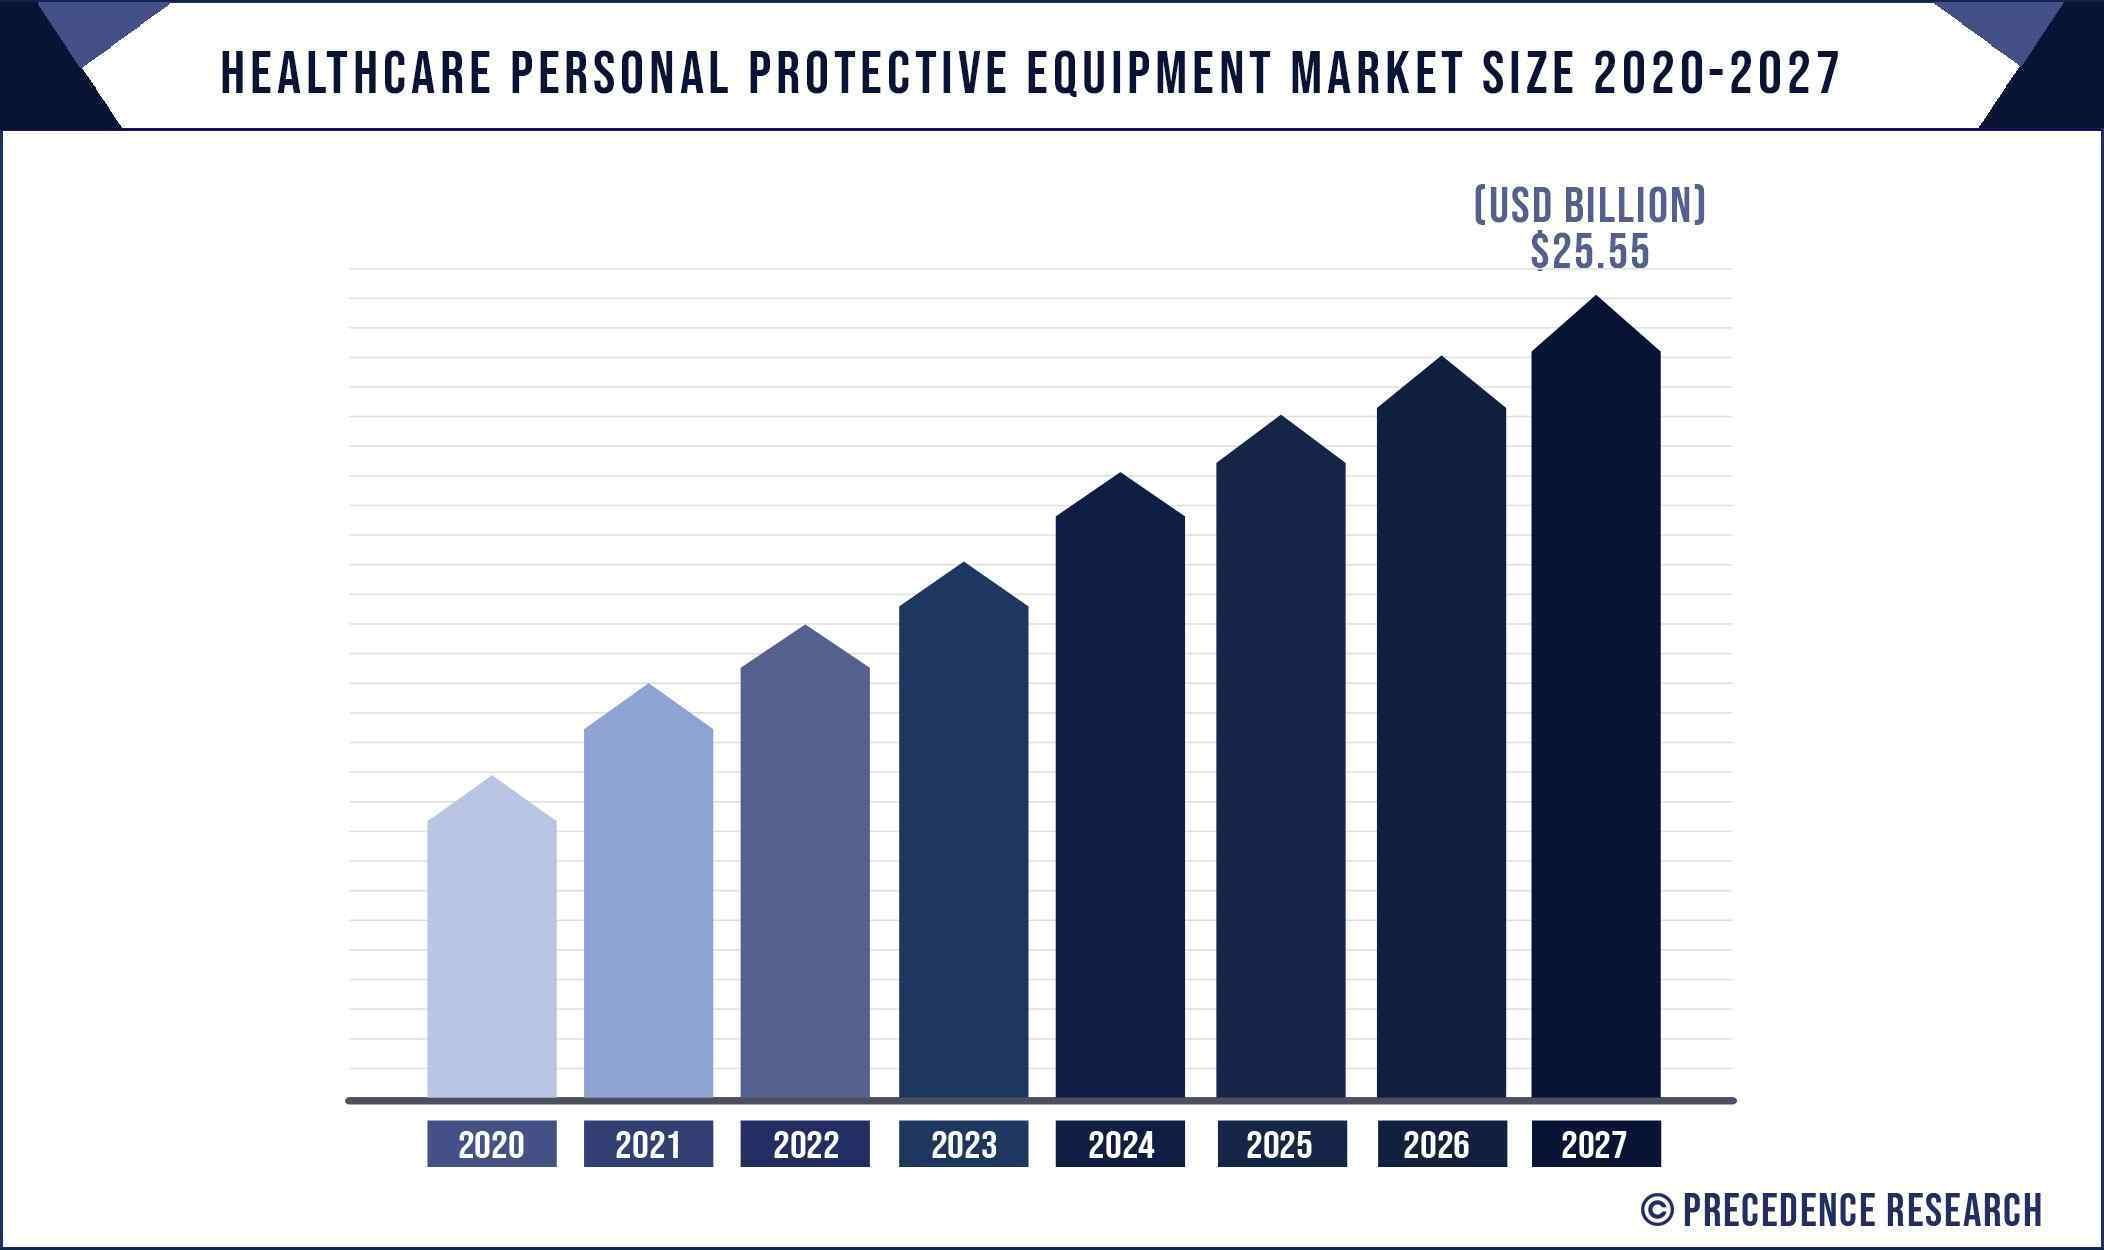 Healthcare Personal Protective Equipment Market Size 2020 to 2027